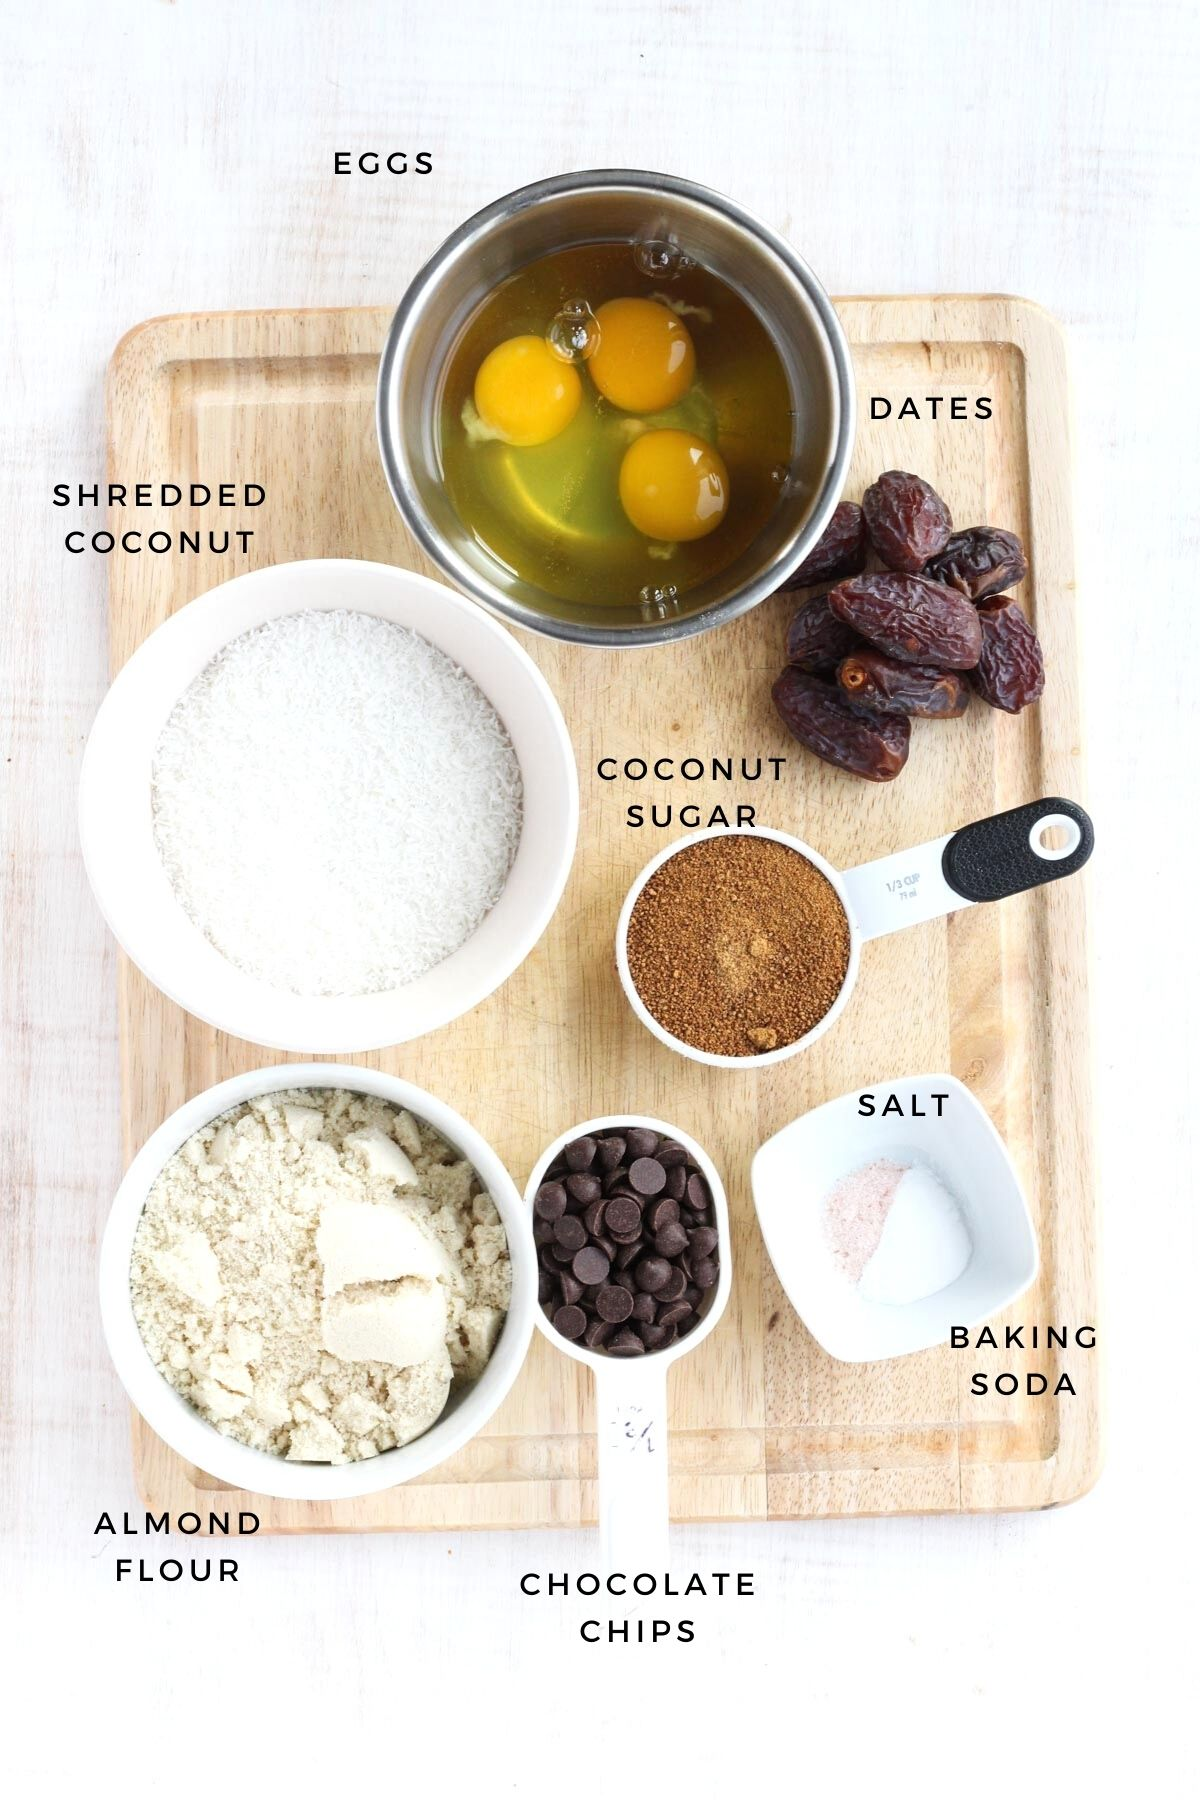 Ingredients for this recipe measured out.